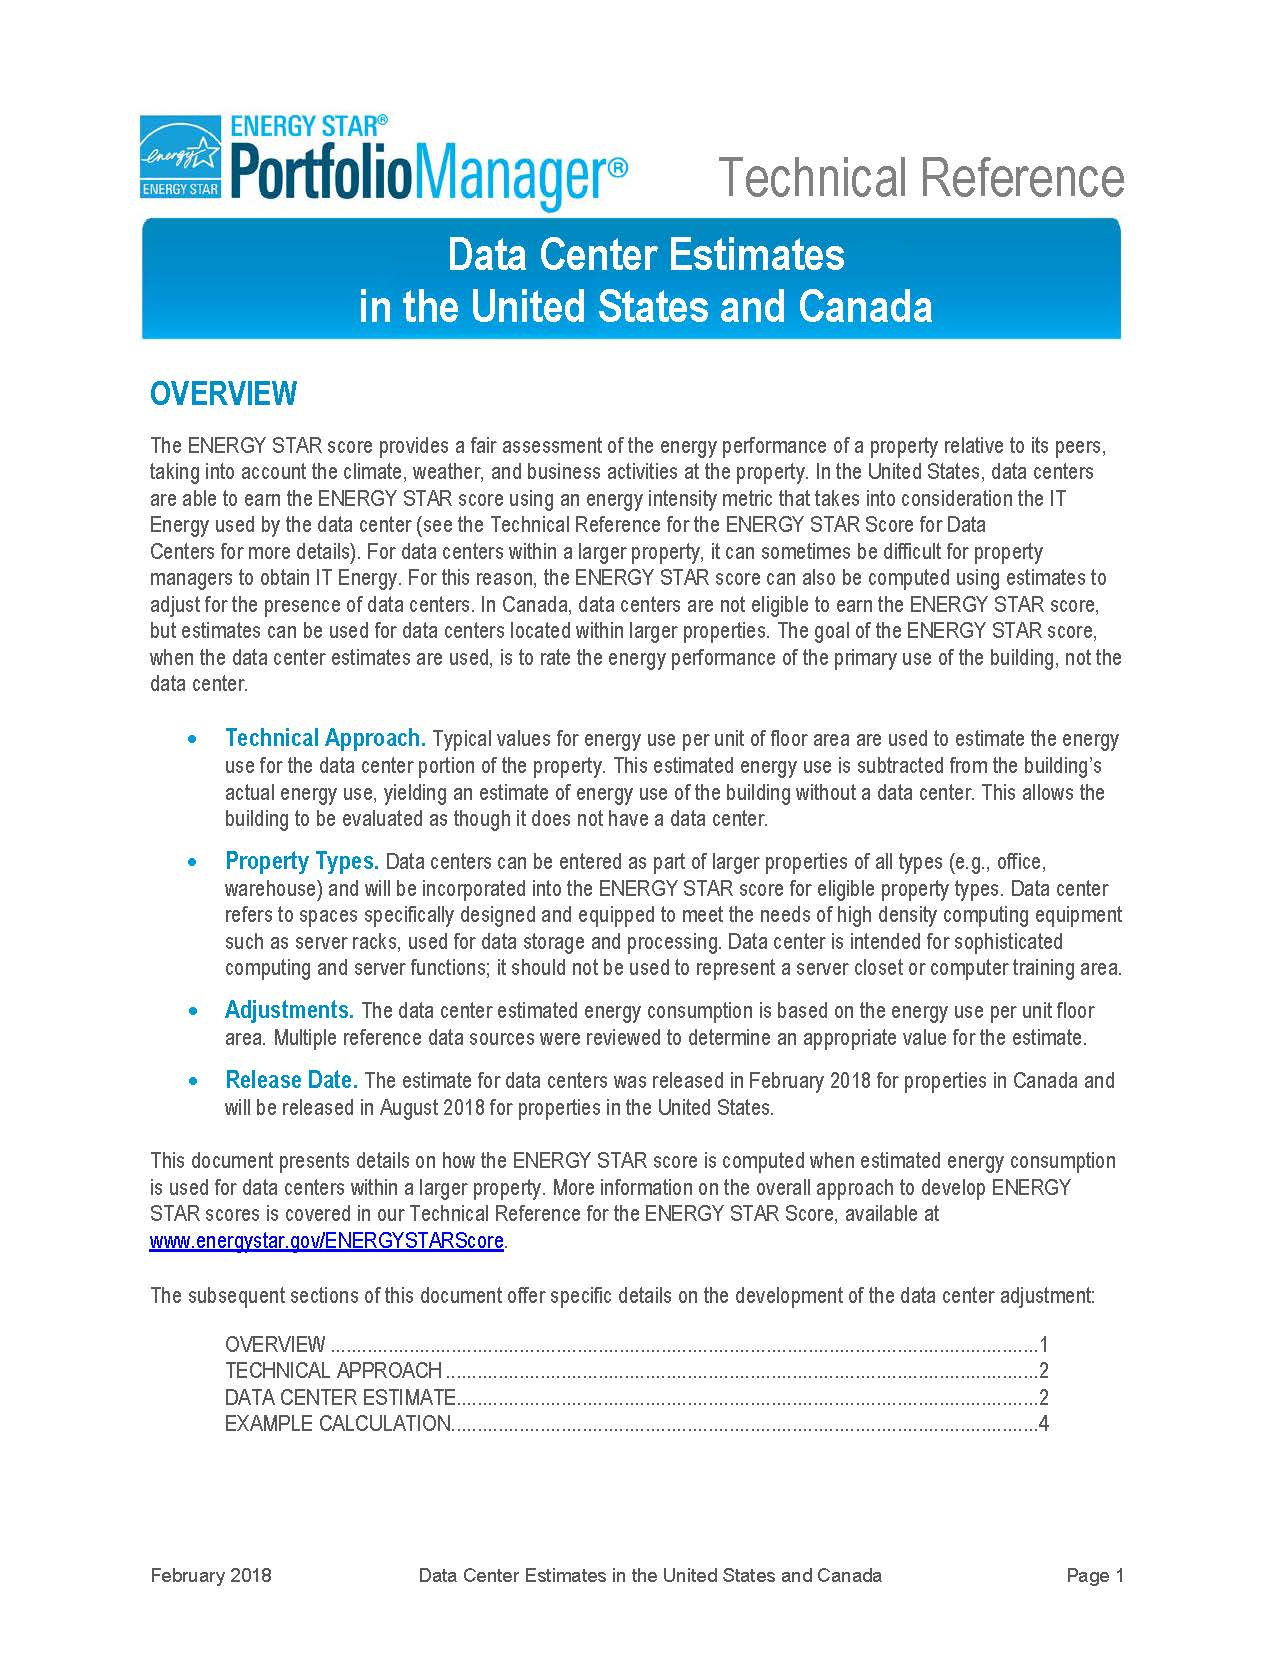 This is a screenshot of the first page of the technical documentation for Data Center Estimates in Canada.